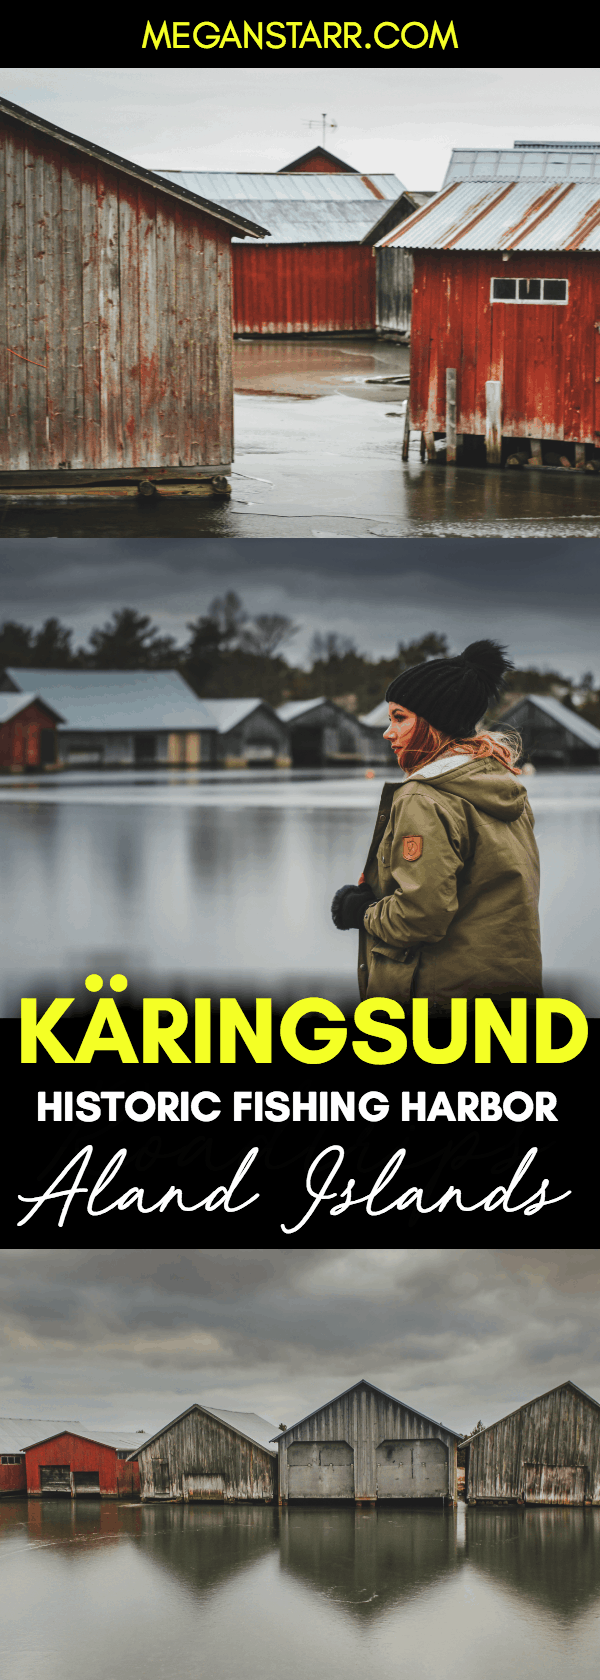 Käringsund, Åland Islands: An Unspoiled Fishing Harbor on Eckerö.  This fishing harbor and resort area in the Åland Islands is the perfect summer or winter getaway.  Click here to see more about the fishing harbor, its history on Vi på Saltkråken, where to stay in Åland Islands, and how to get to the Åland Islands.  #alandislands #finland #offthepath #nordics